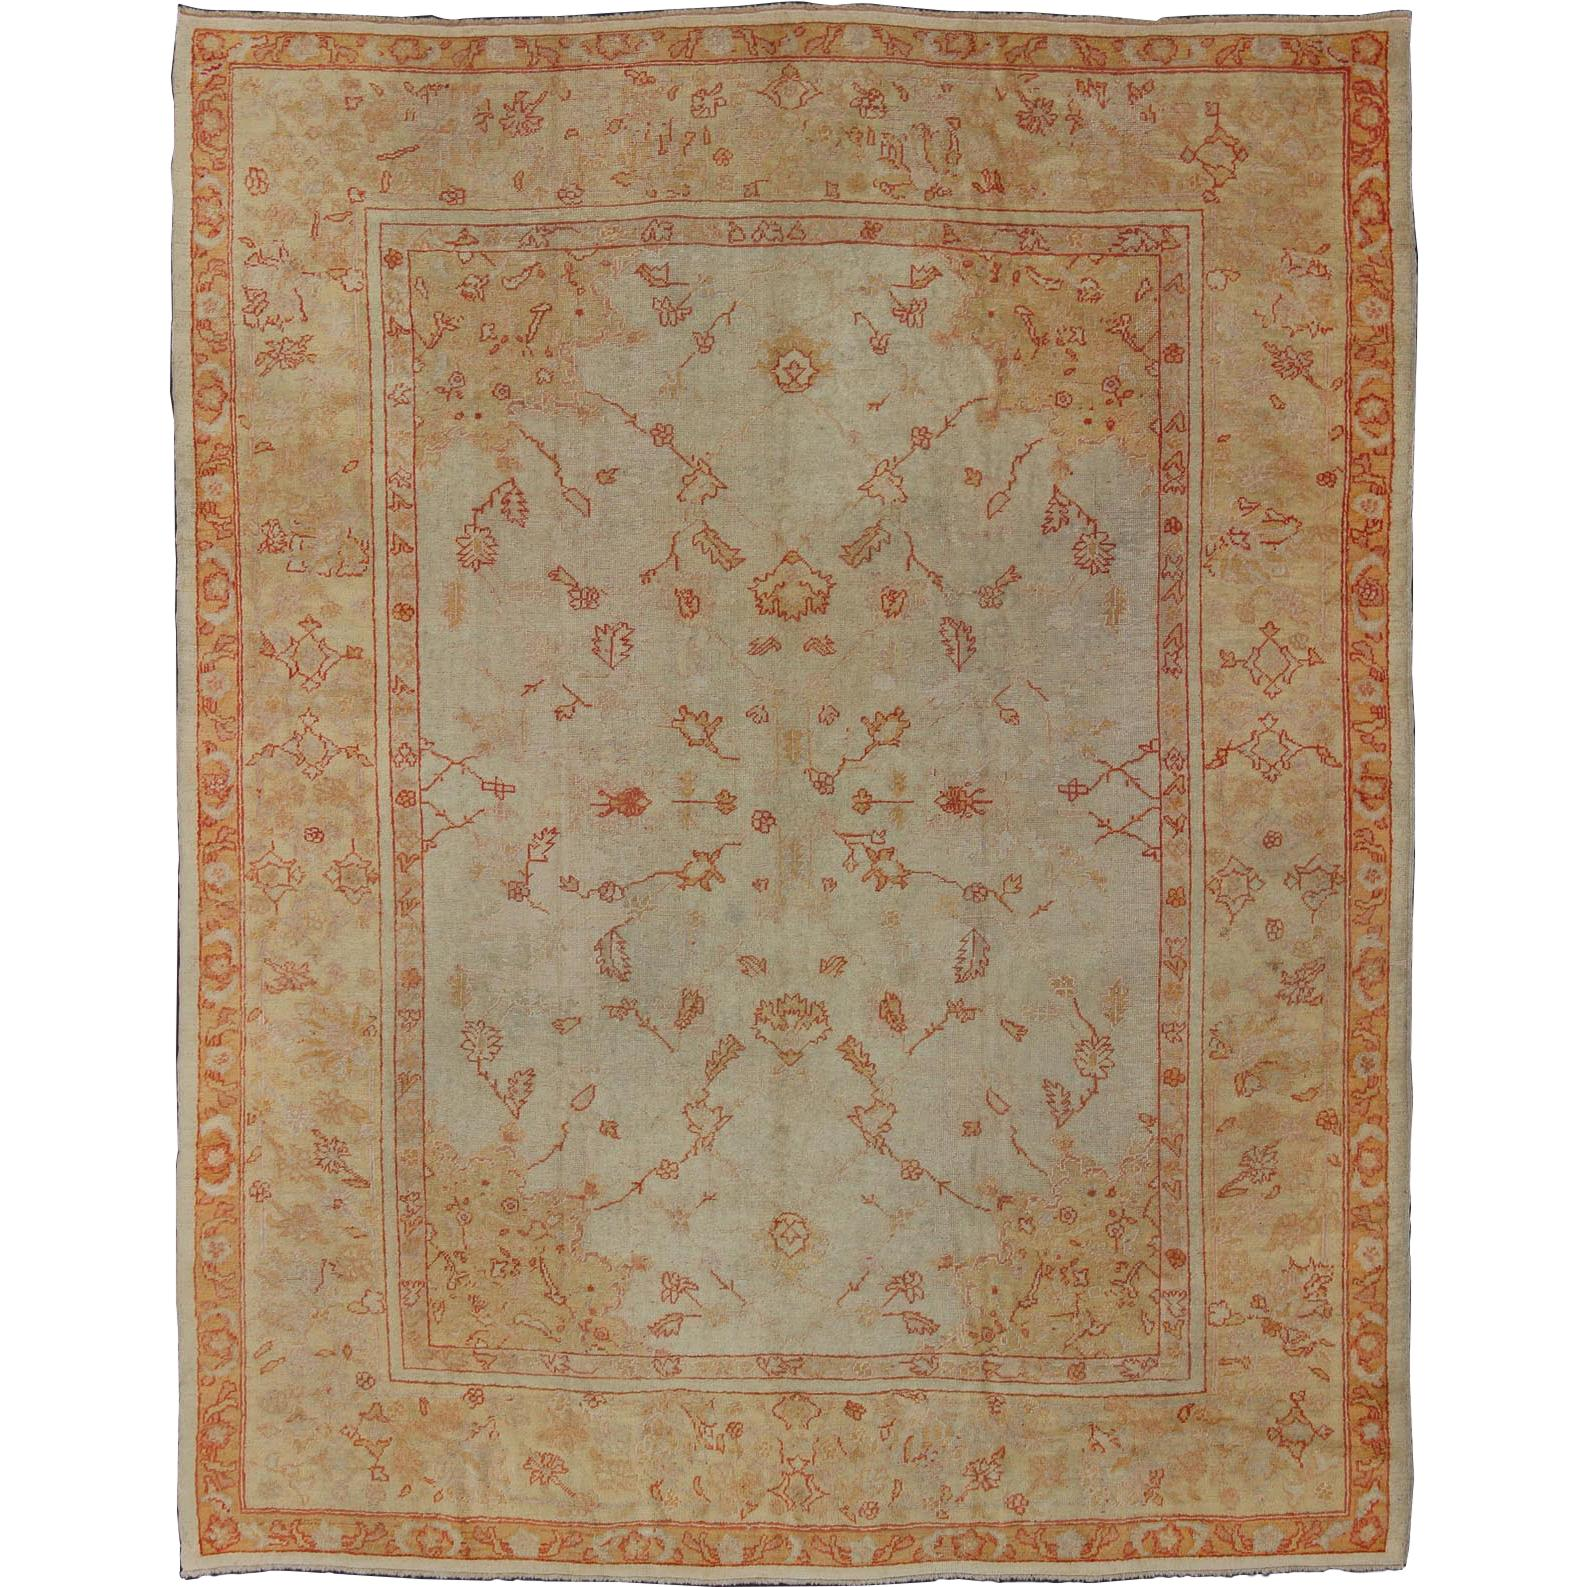 Splendid Antique Turkish Oushak Carpet